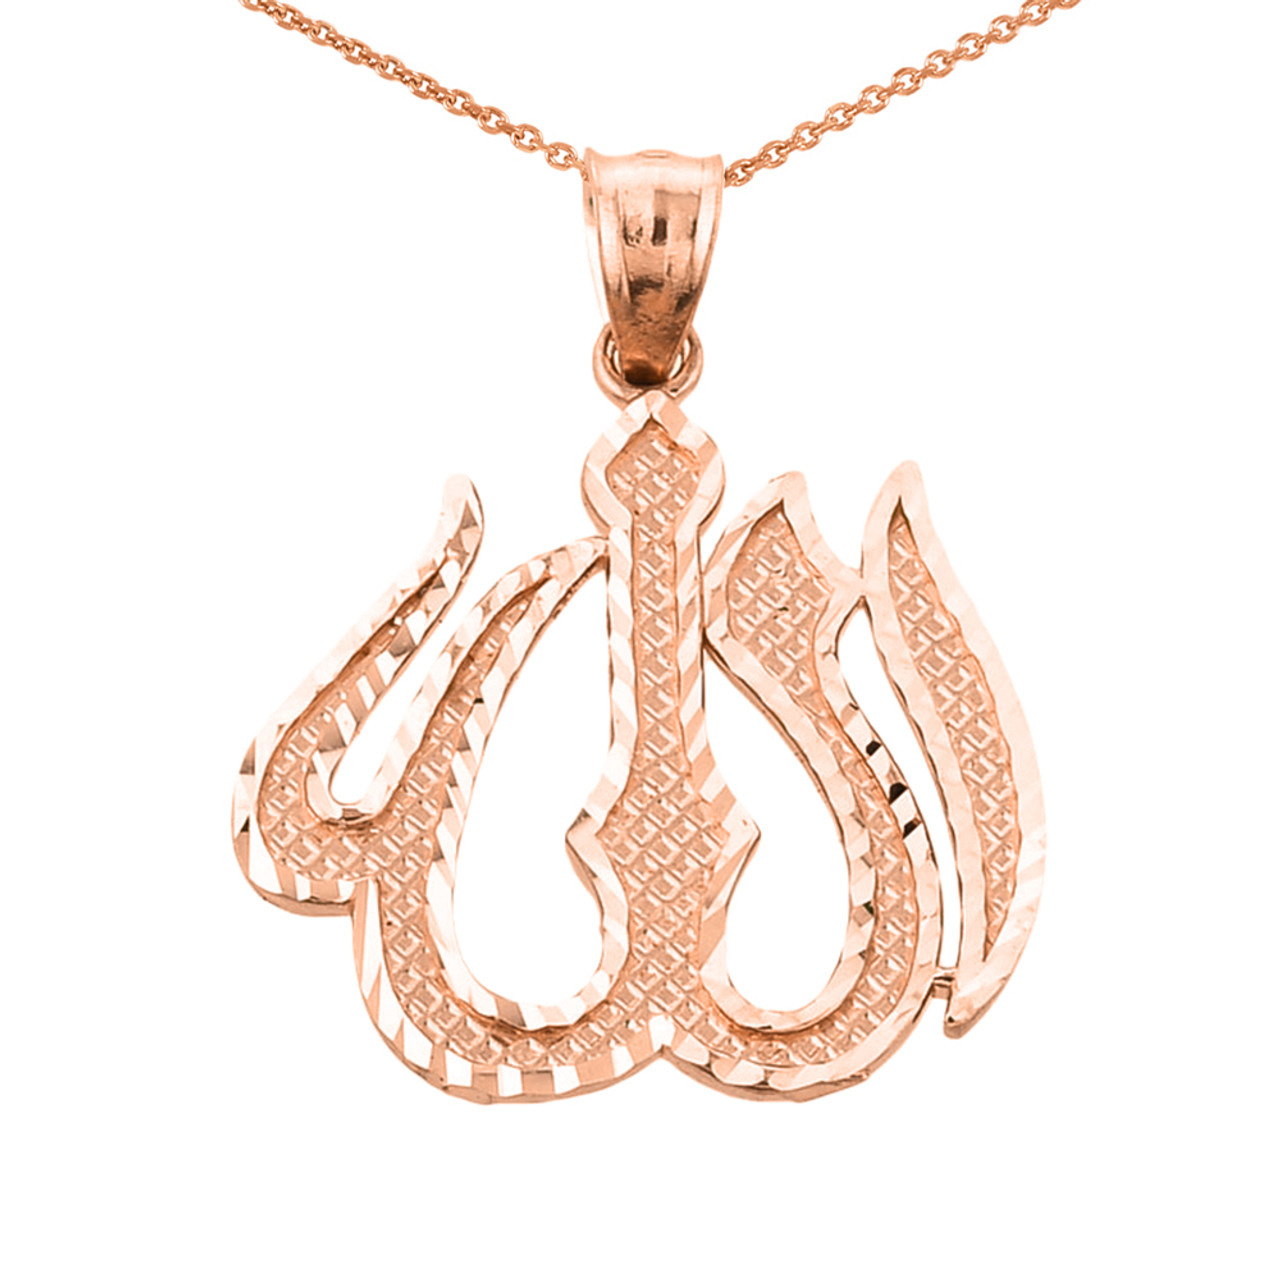 chain cut silver rope diamond at sterling gold necklace over